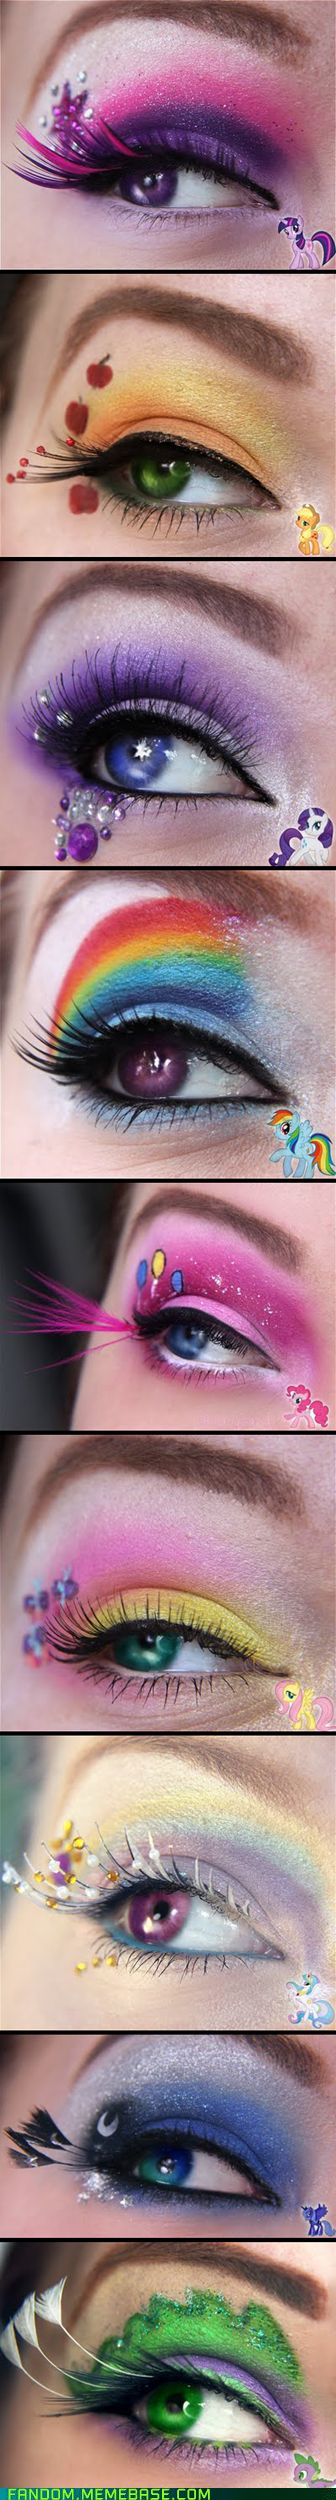 fanart & cosplay - Makeup Is Magic